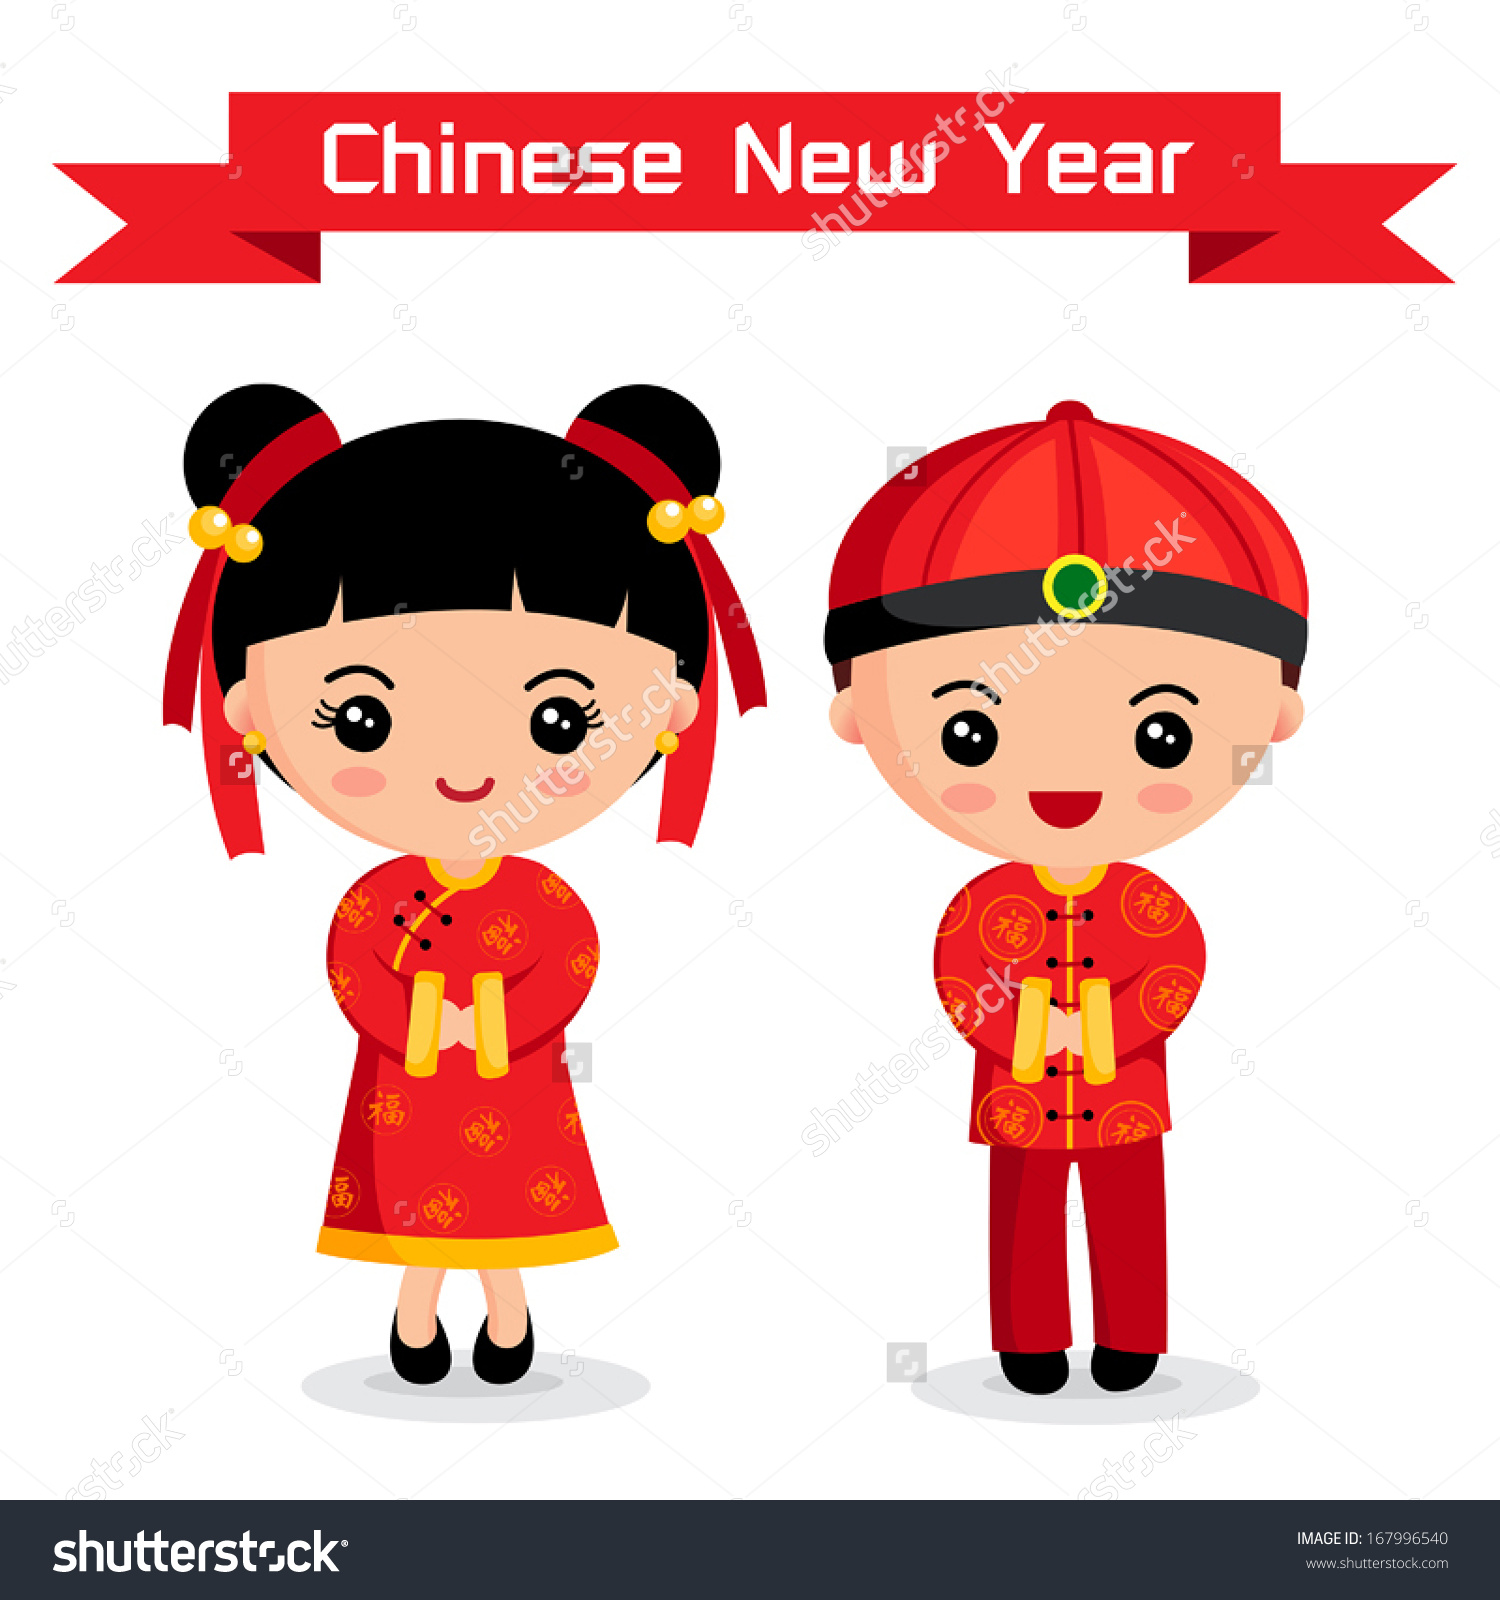 Chinese New Year Outfit Clipart.